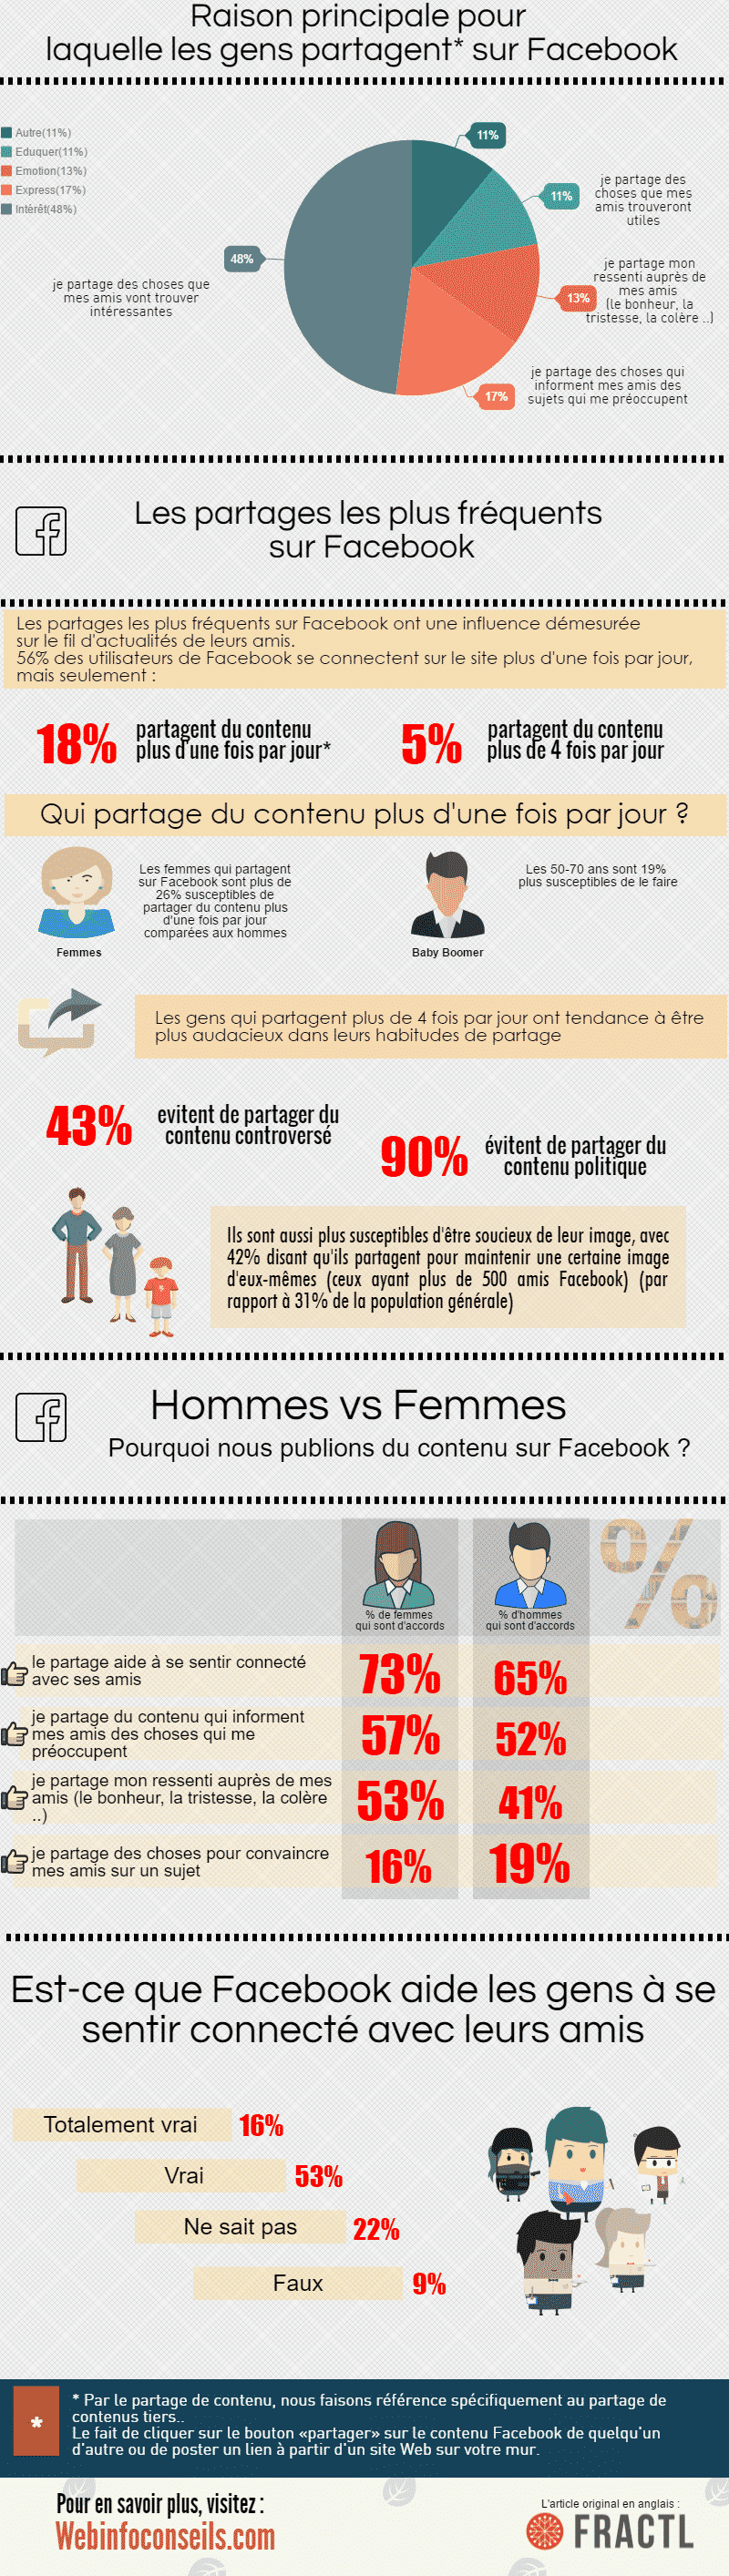 infographie---comportement-Facebook